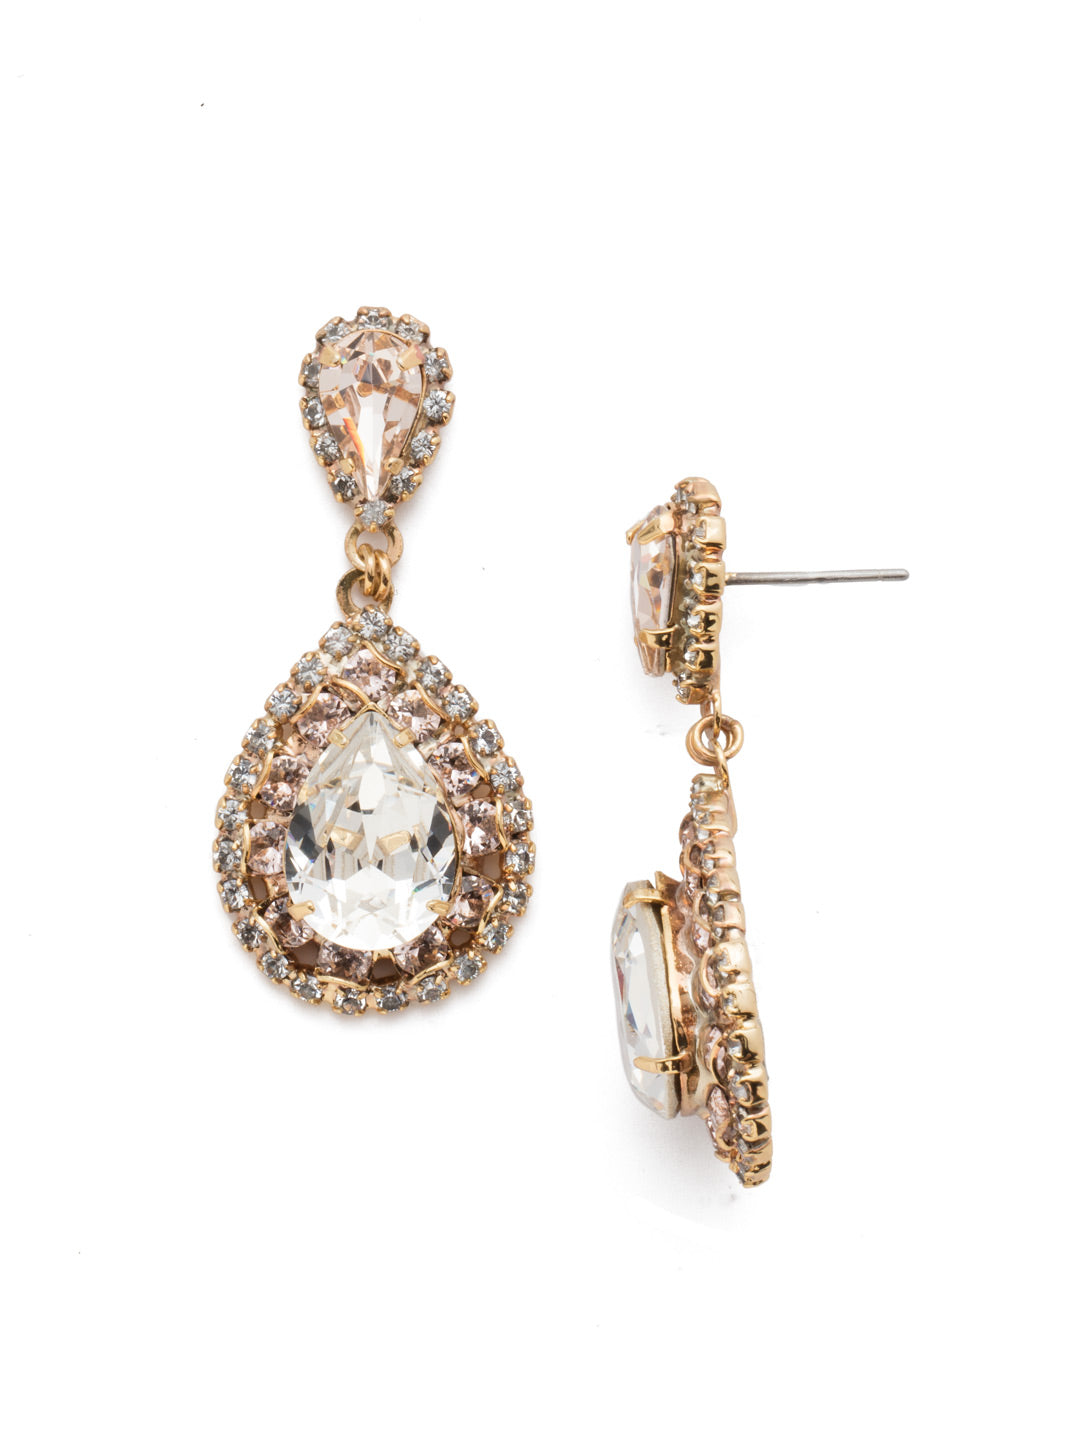 Oval Encrusted Crystal Dangle Earrings - ECW47BGPLS